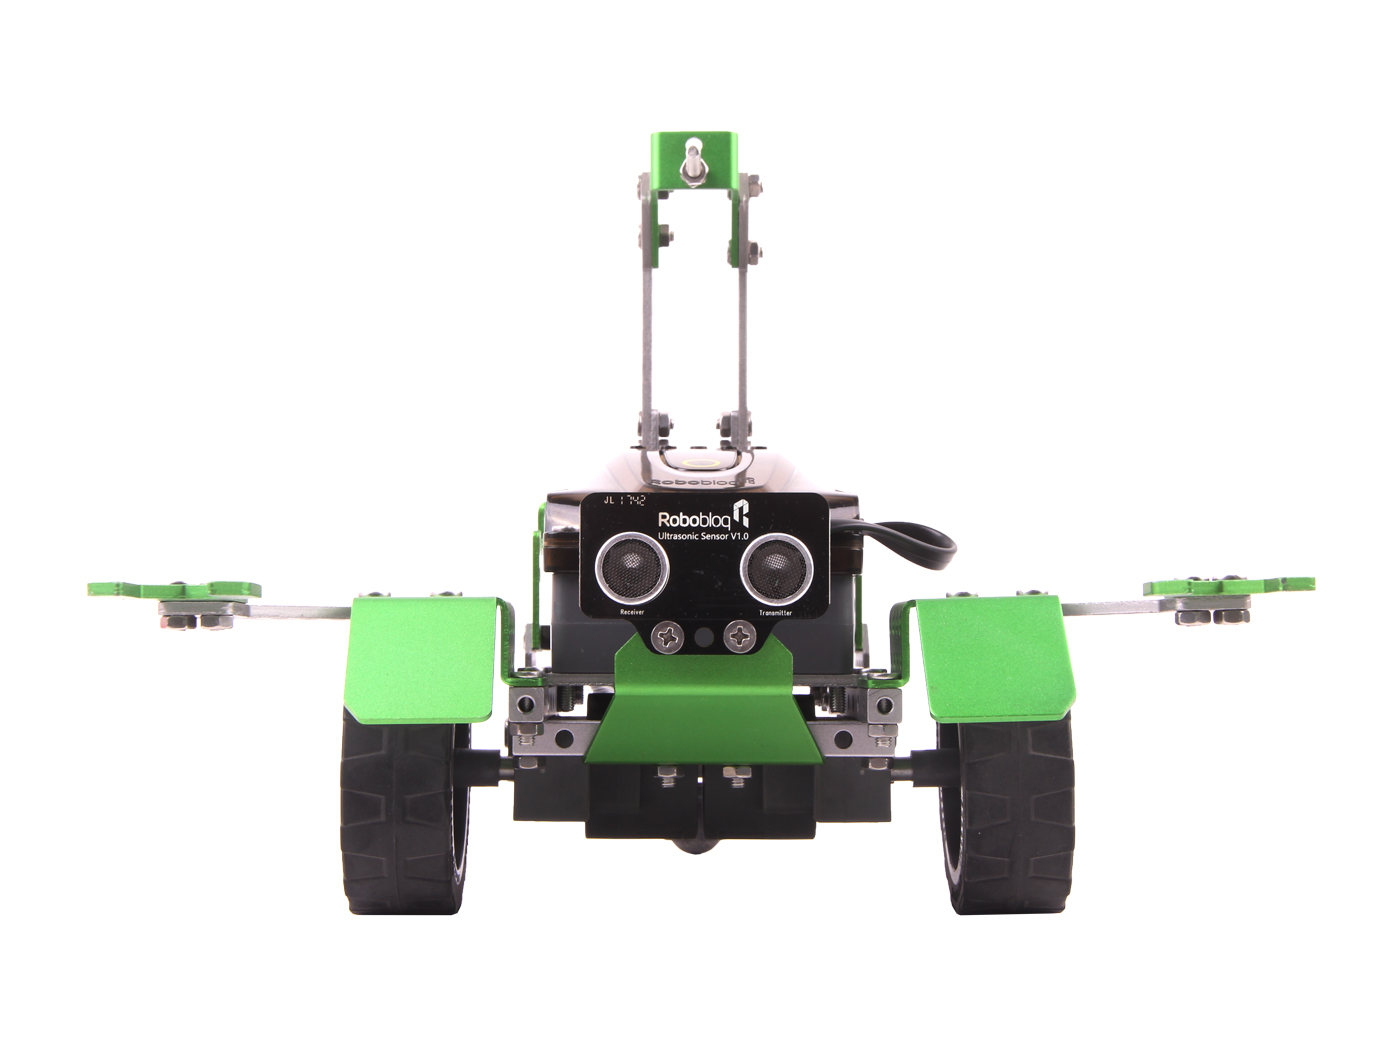 Robobloq Qoopers 6-in-1 Transformable Robot Kit,Arduino Coding & Graphical Programming, STEM Toy, Lego Compatibility